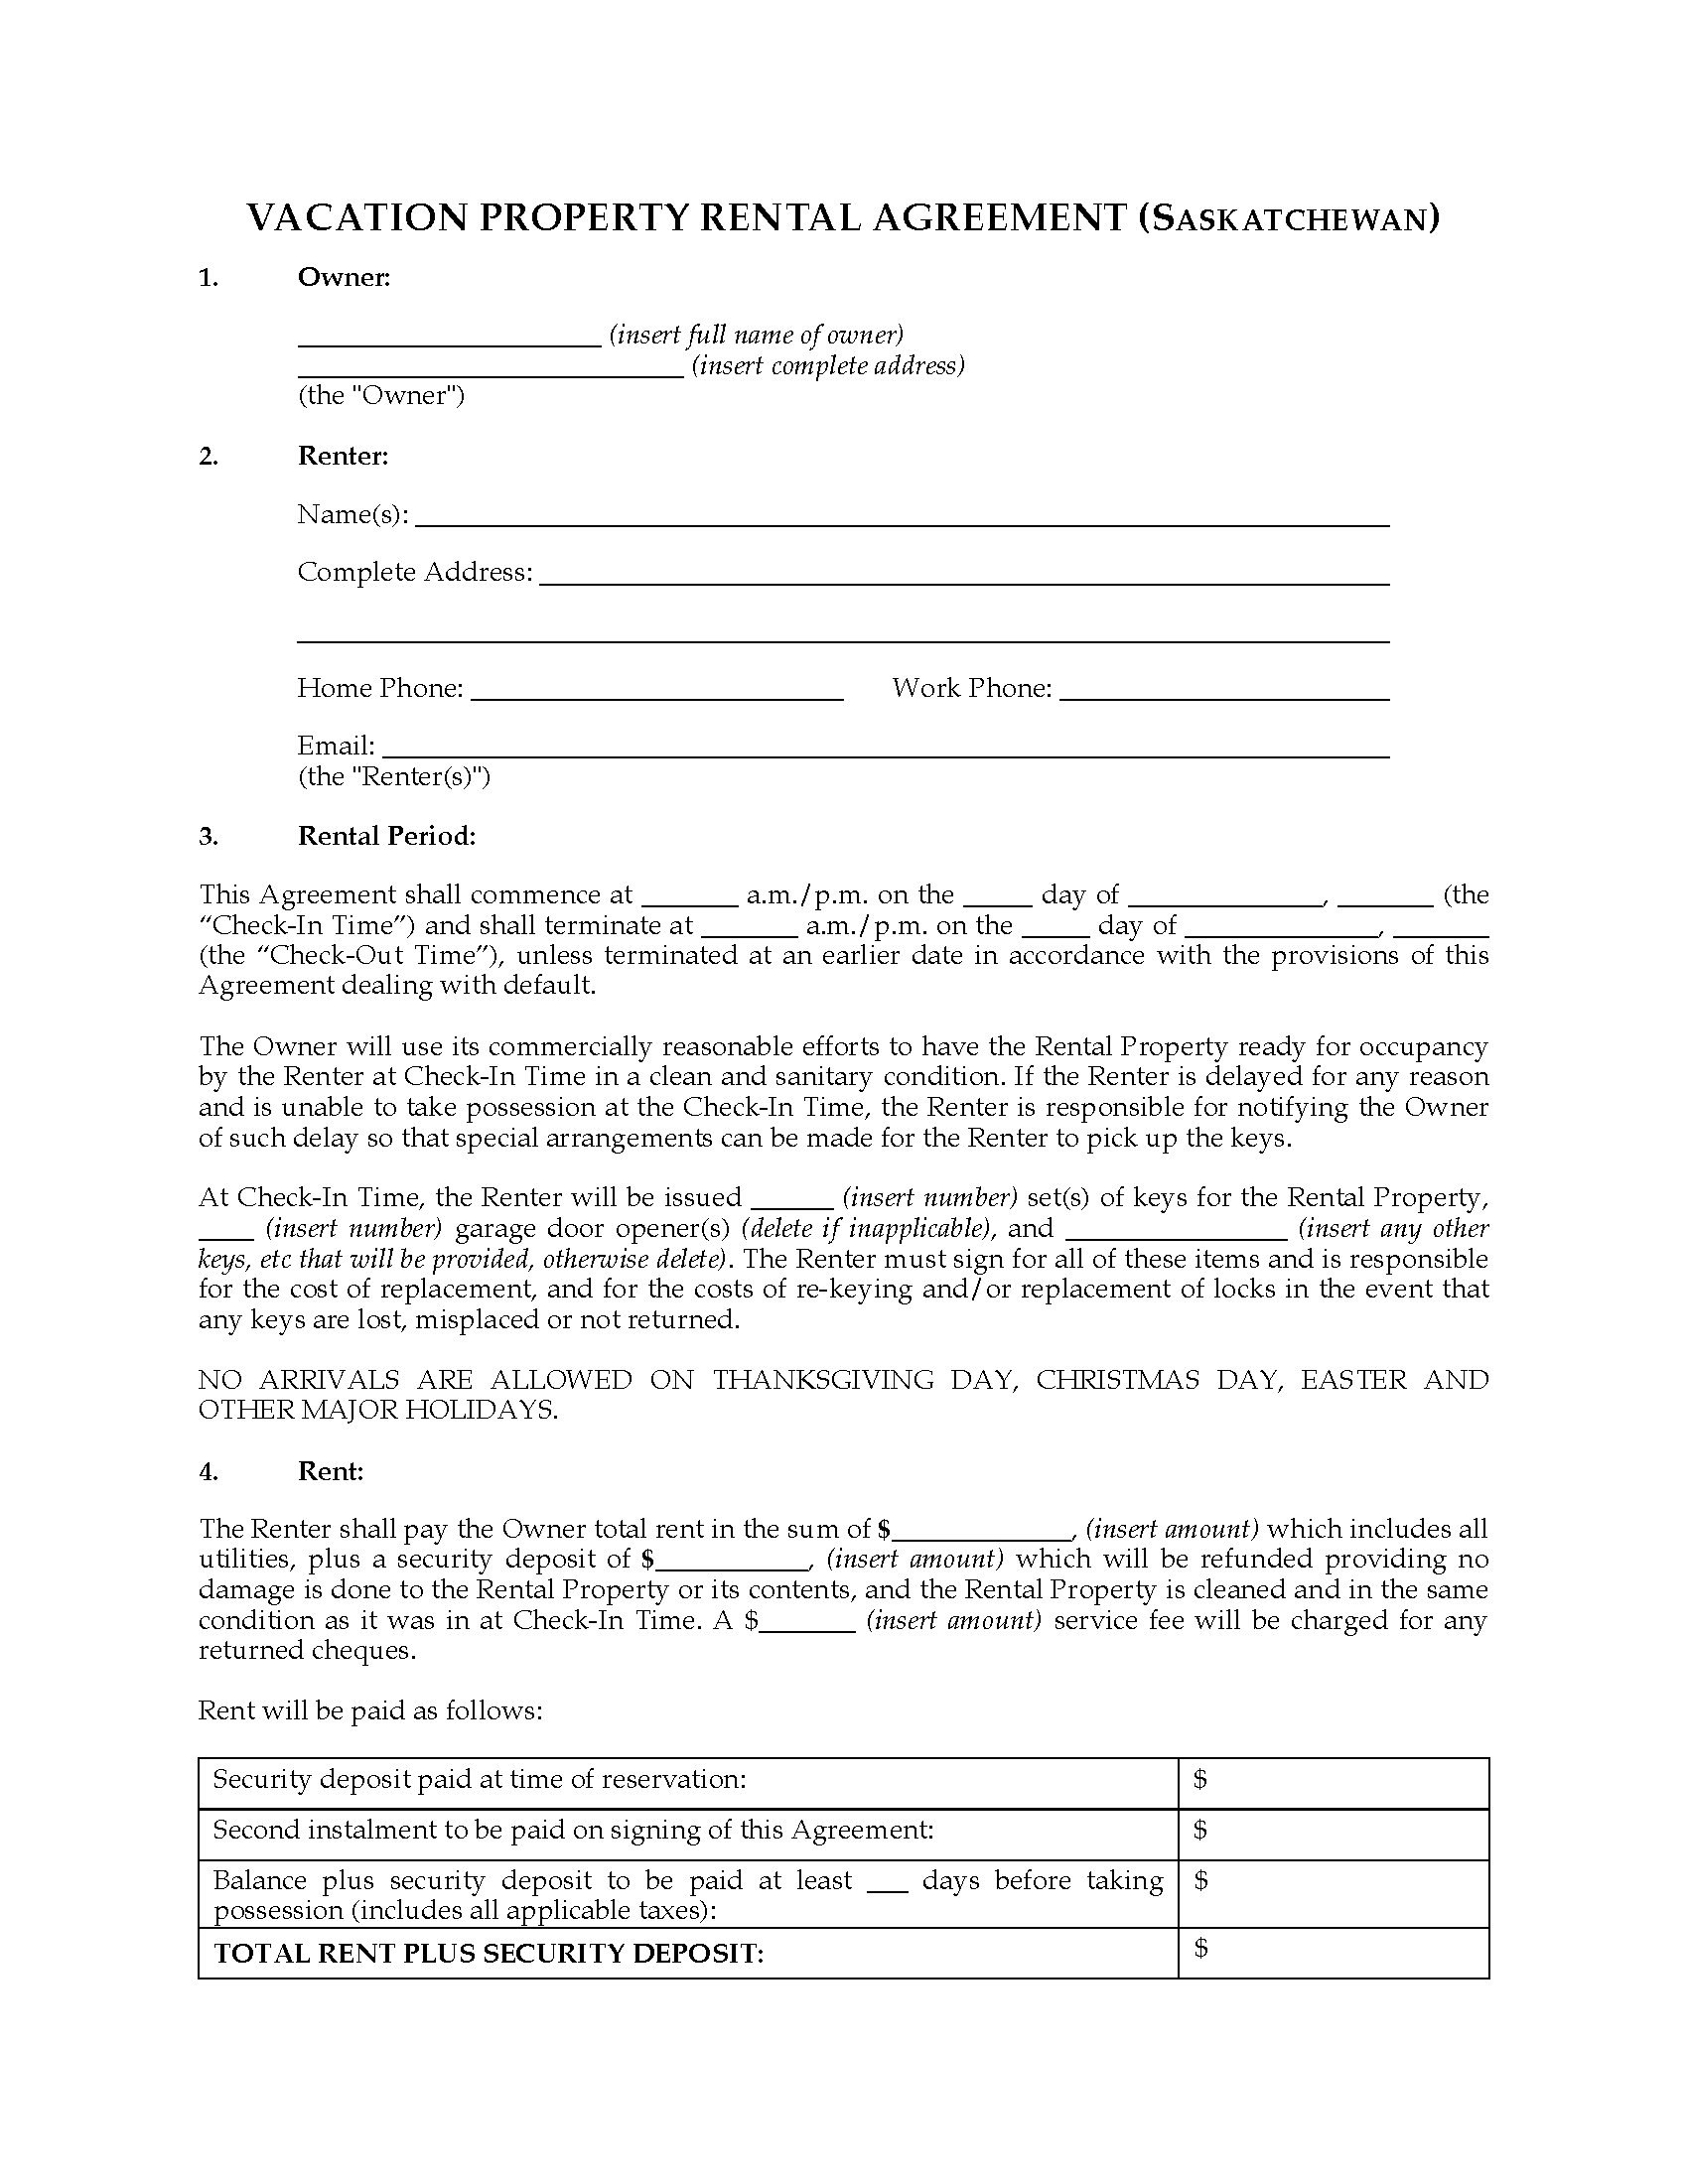 Saskatchewan Vacation Property Rental Agreement  Legal Forms And Regarding Vacation Home Rental Agreement Template